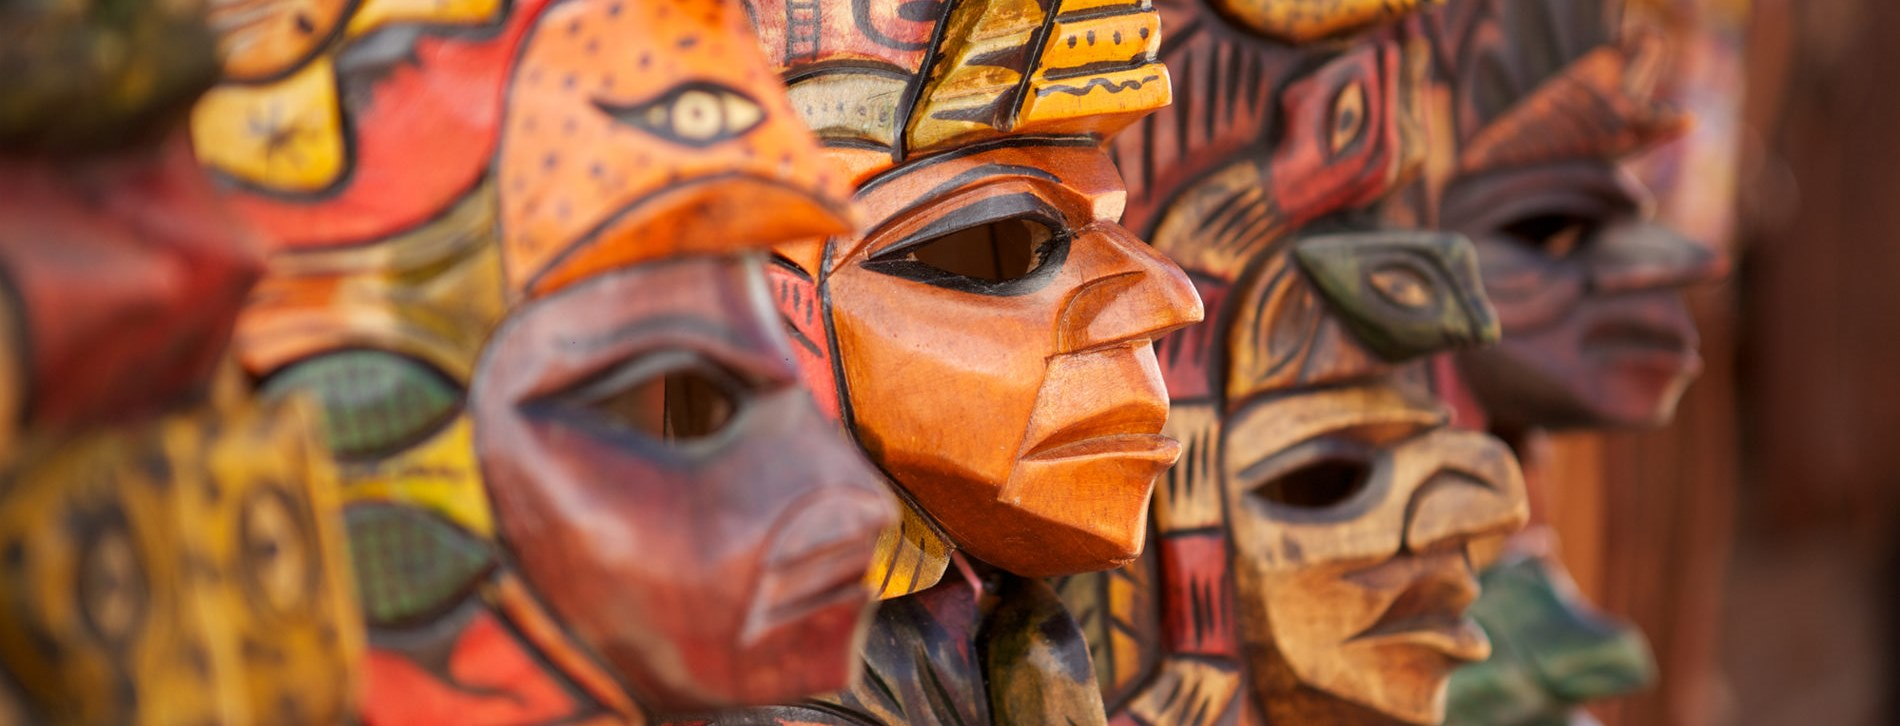 mexicos culture Mexican culture: 7 interesting facts you probably don't know mexico is a beautiful and unique country, its culture spanning much wider than the typical bits and pieces we see on vacation mexico's rich history has created a varied, and fascinating, culture, more so than you probably realize.